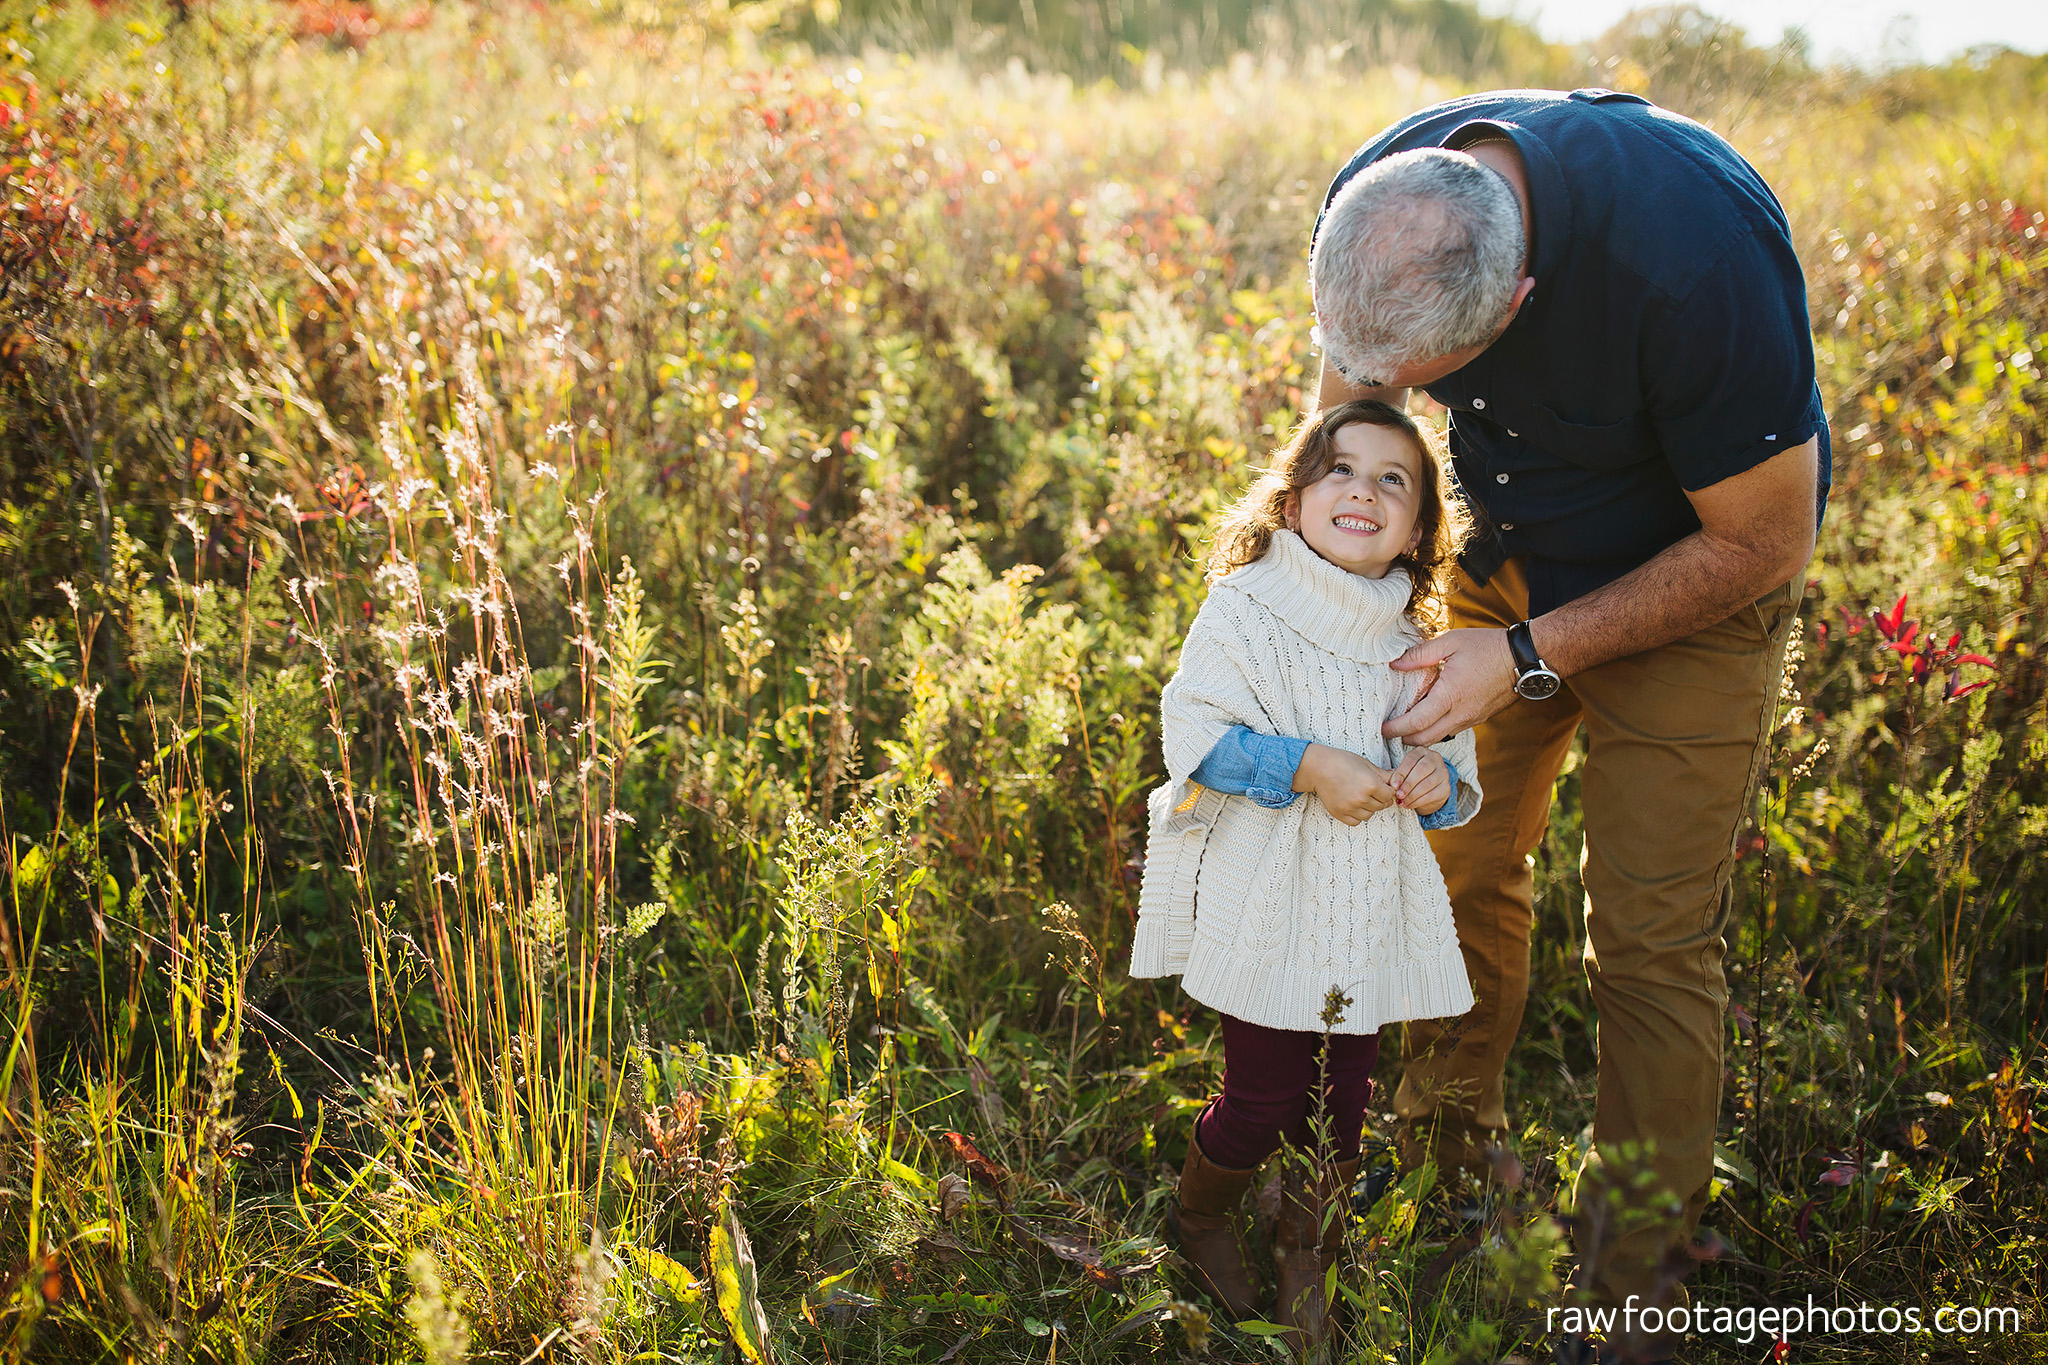 london_ontario_family_photographer-golden_hour_maternity_session-raw_footage_photography024.jpg